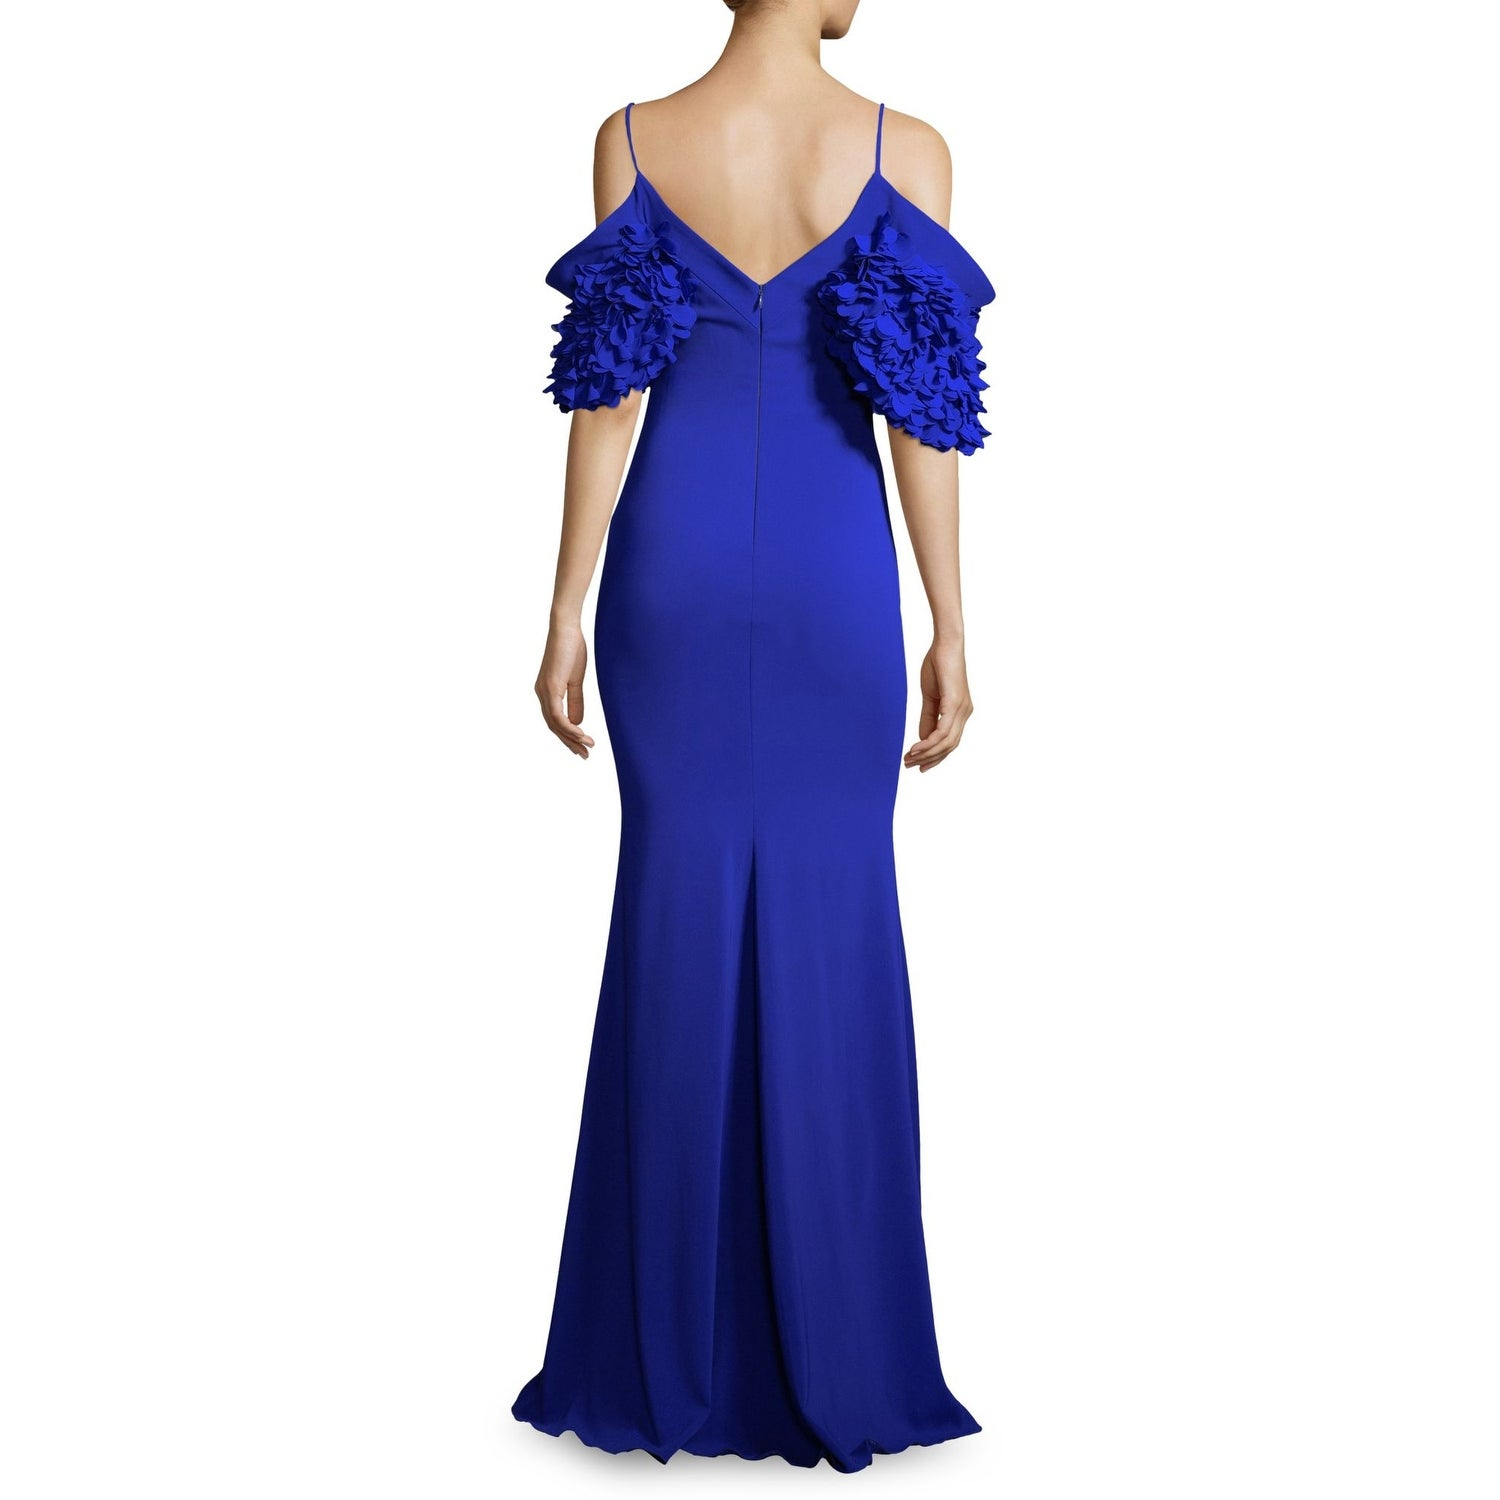 cfc4259646340 Shop Badgley Mischka Cold Shoulder Ruffle Sleeve Evening Gown Dress  Electric Blue - Free Shipping Today - Overstock - 25773179